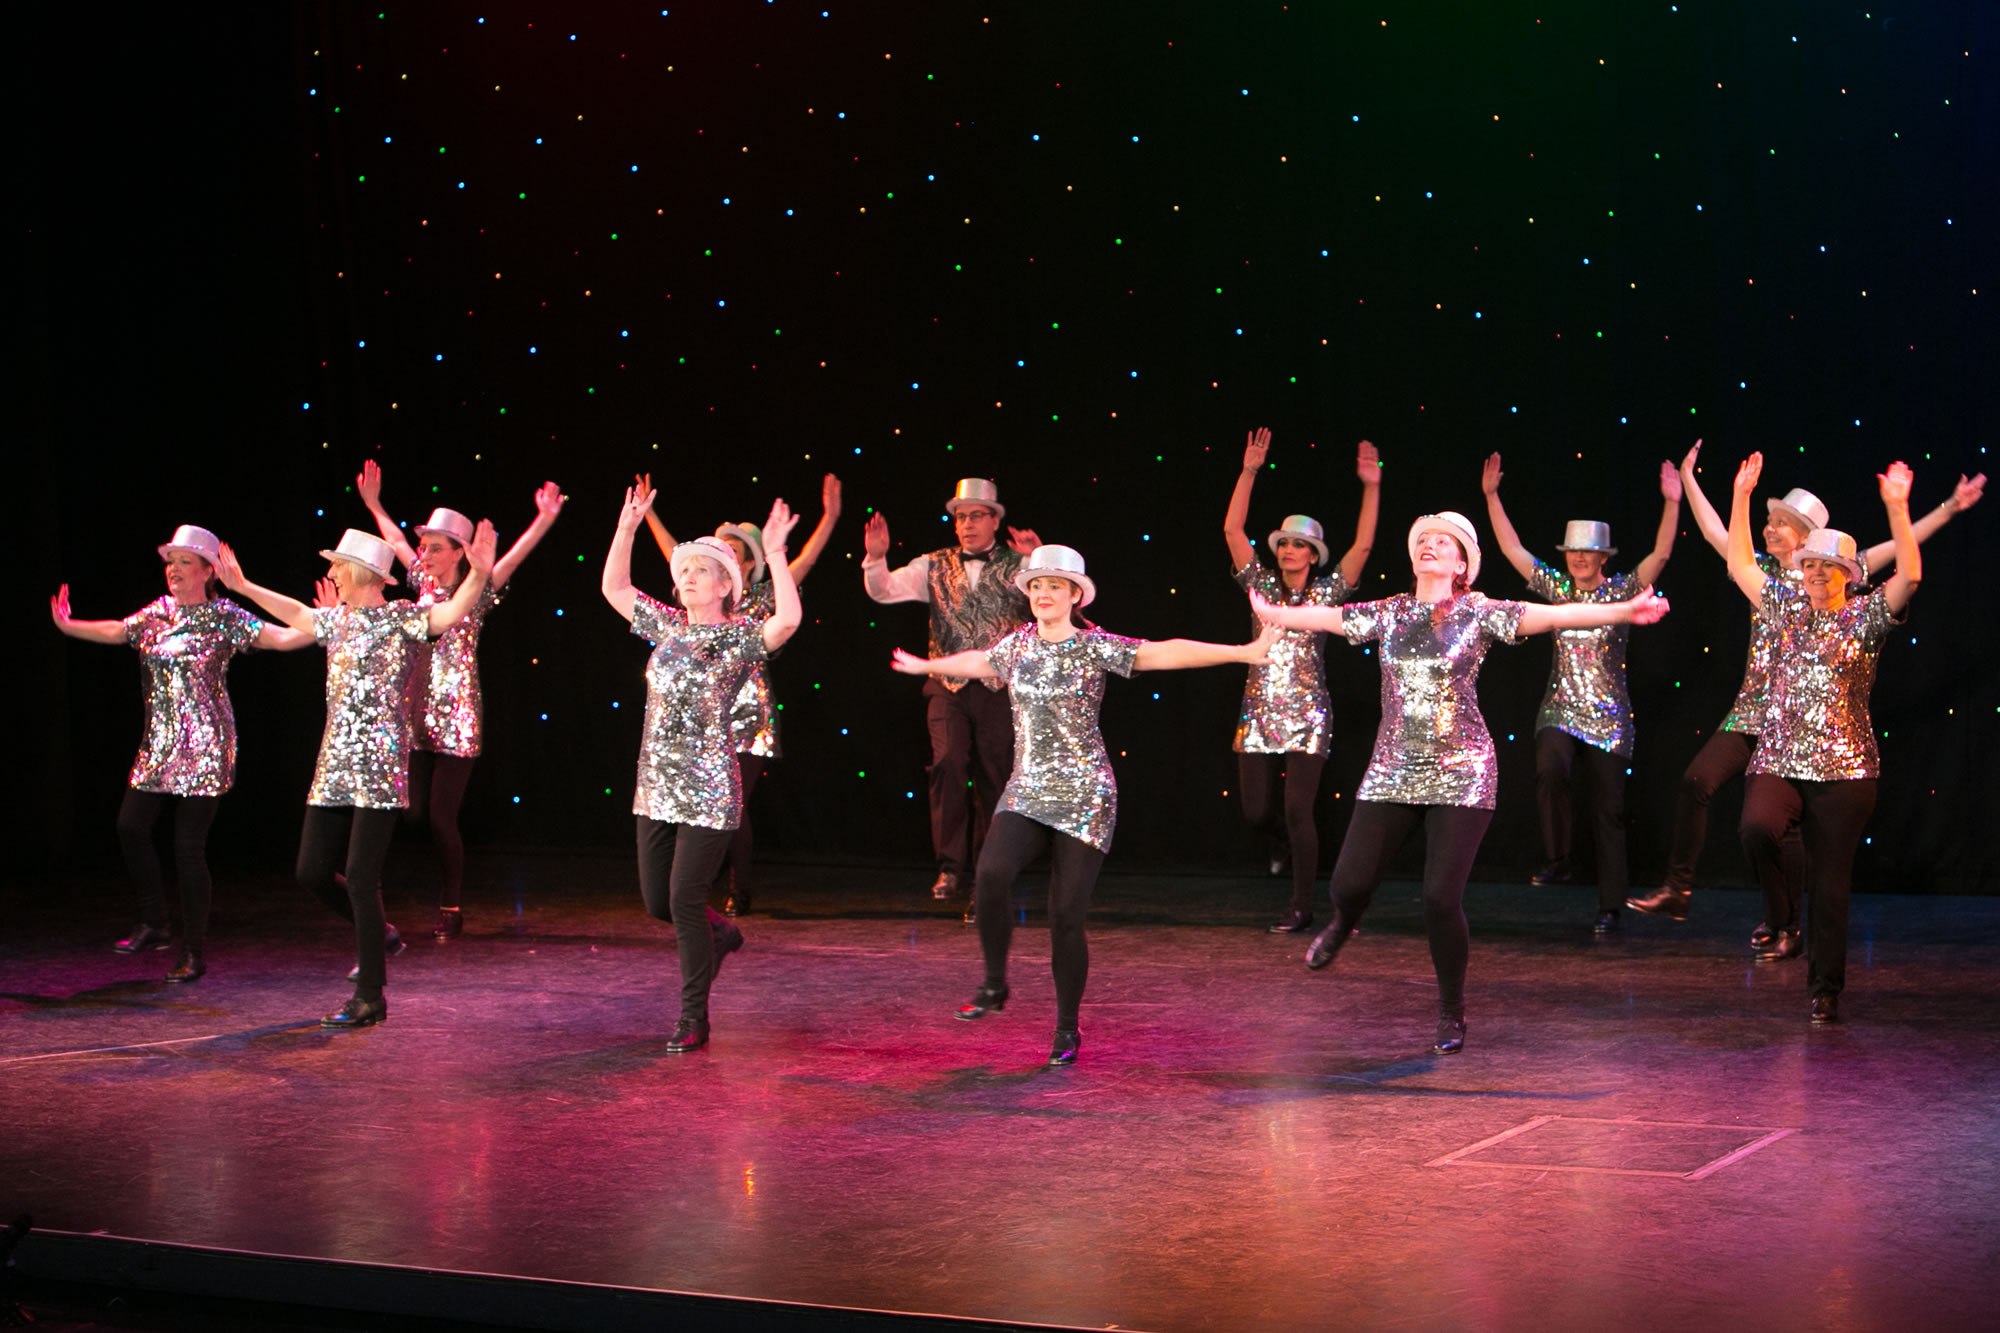 Hitchin_School_of_Dance_Show_2019-SM1_2943.jpg